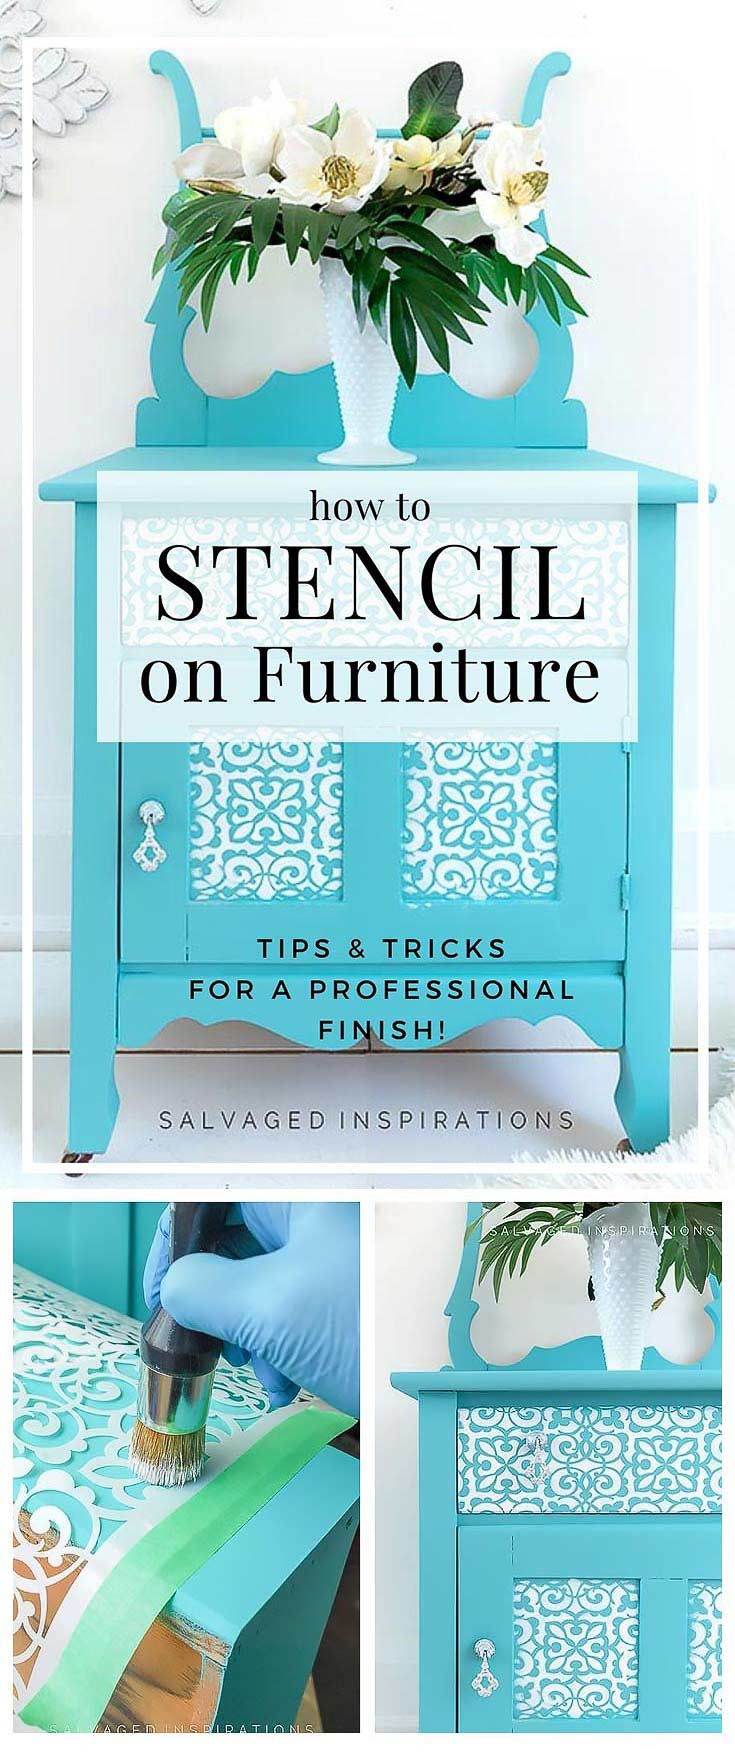 How To Stencil on Furniture Tutorial